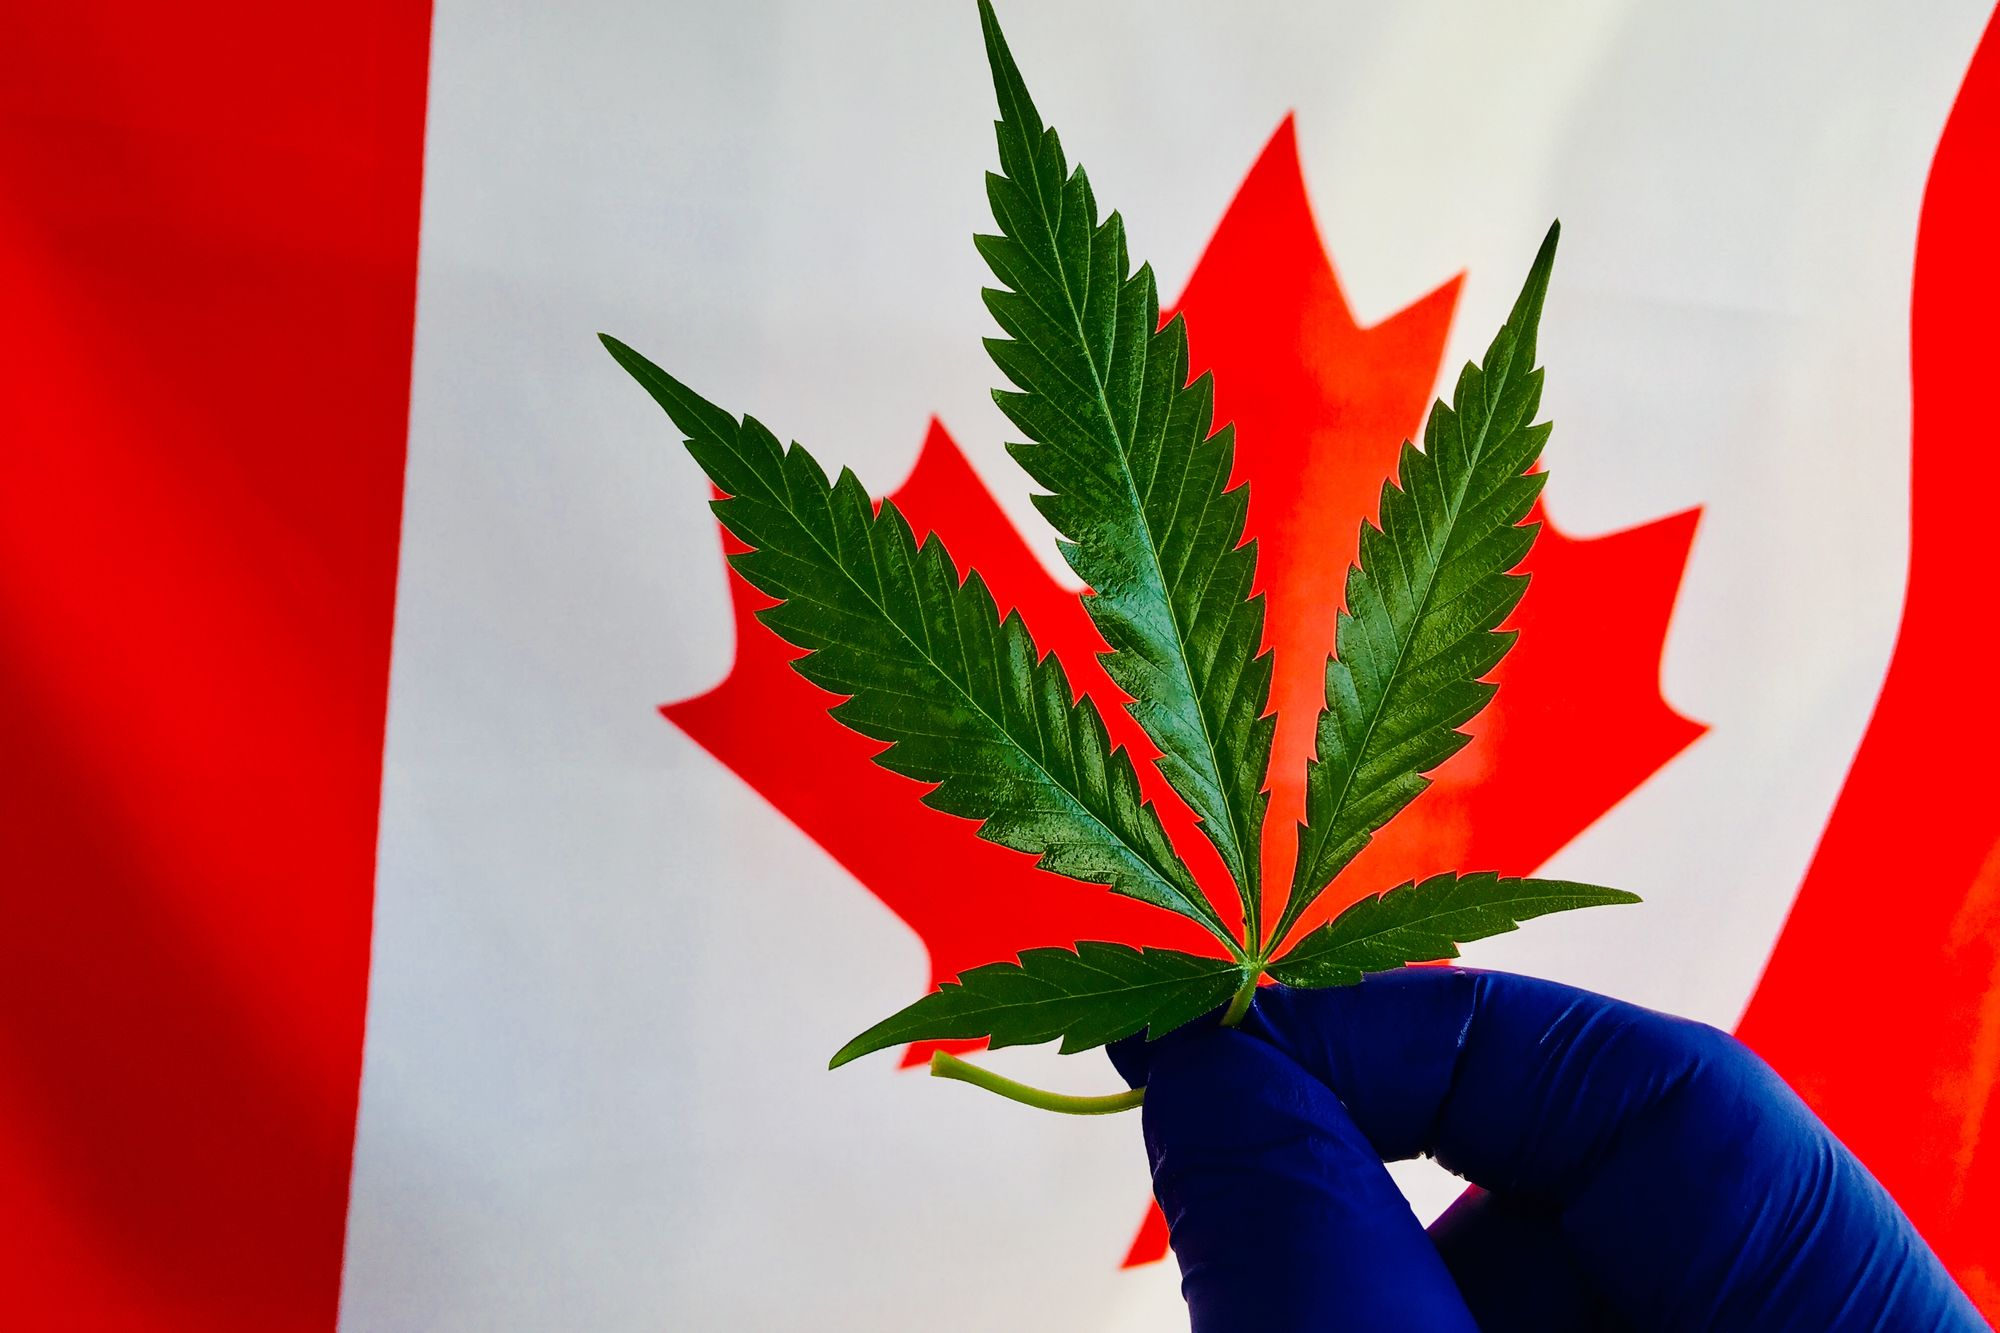 Researchers Overwhelm Canadian Government With Marijuana Research Requests